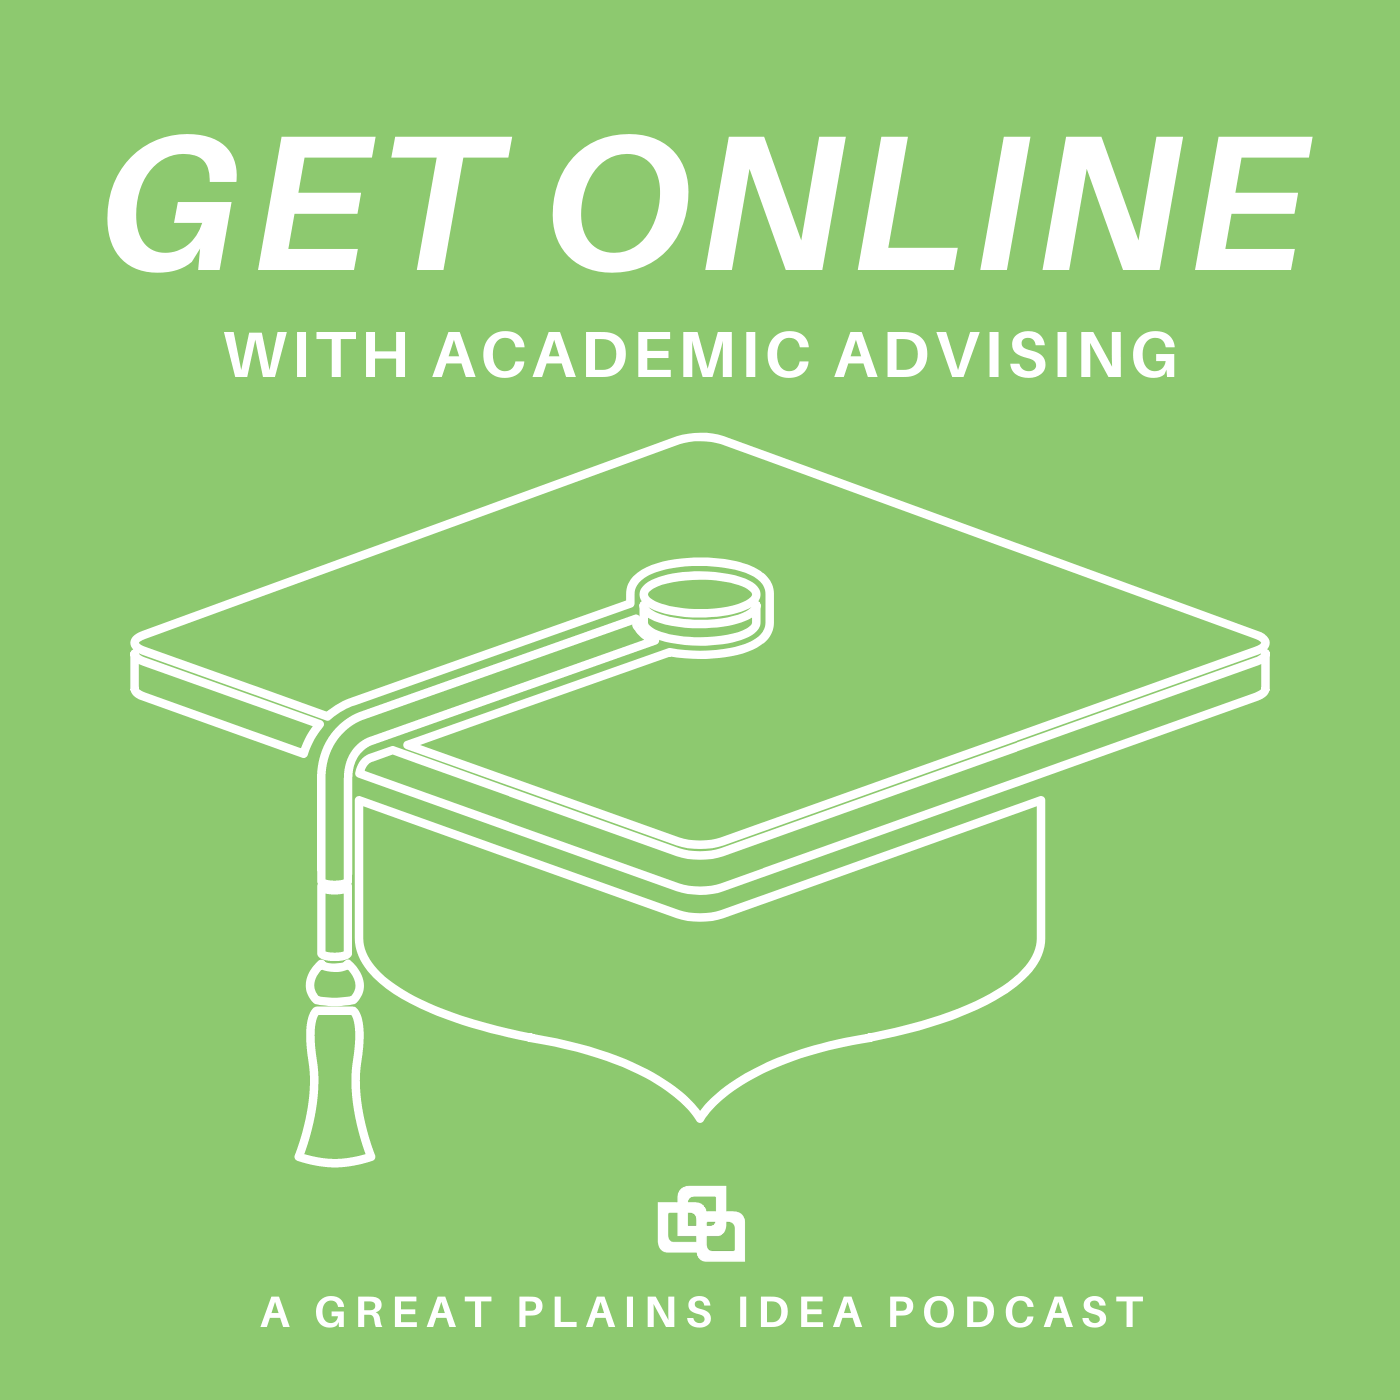 Episode 3 of Get Online with Academic Advising